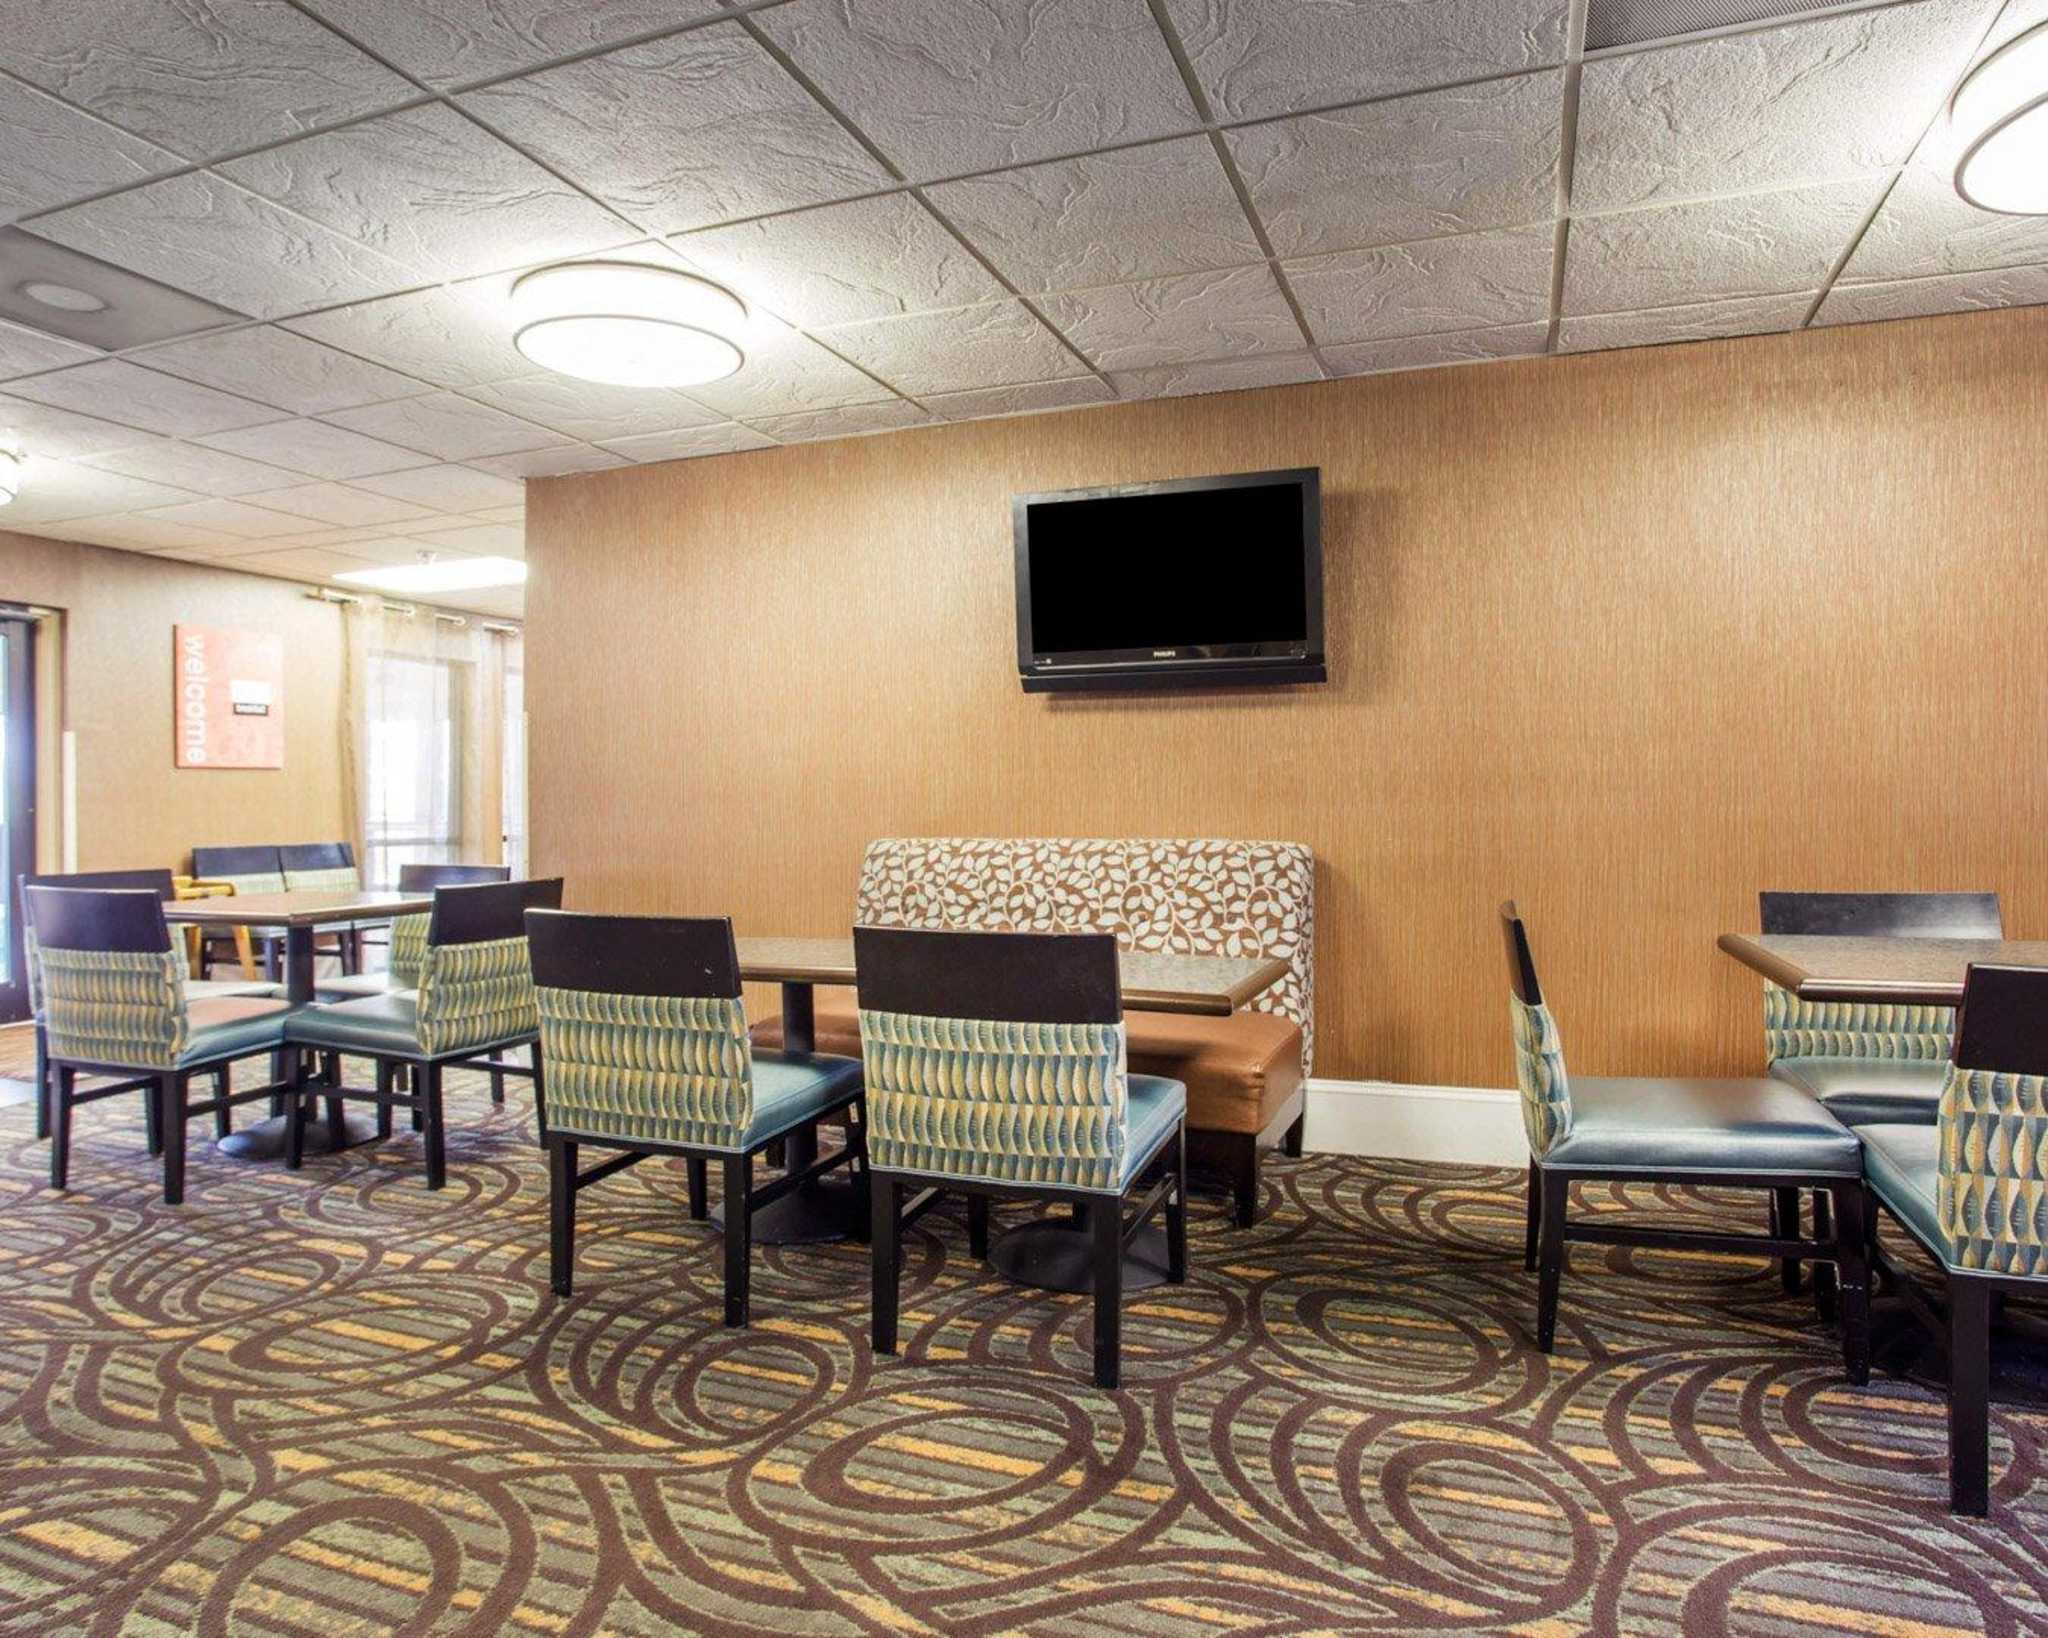 Comfort Inn & Suites at Stone Mountain image 21